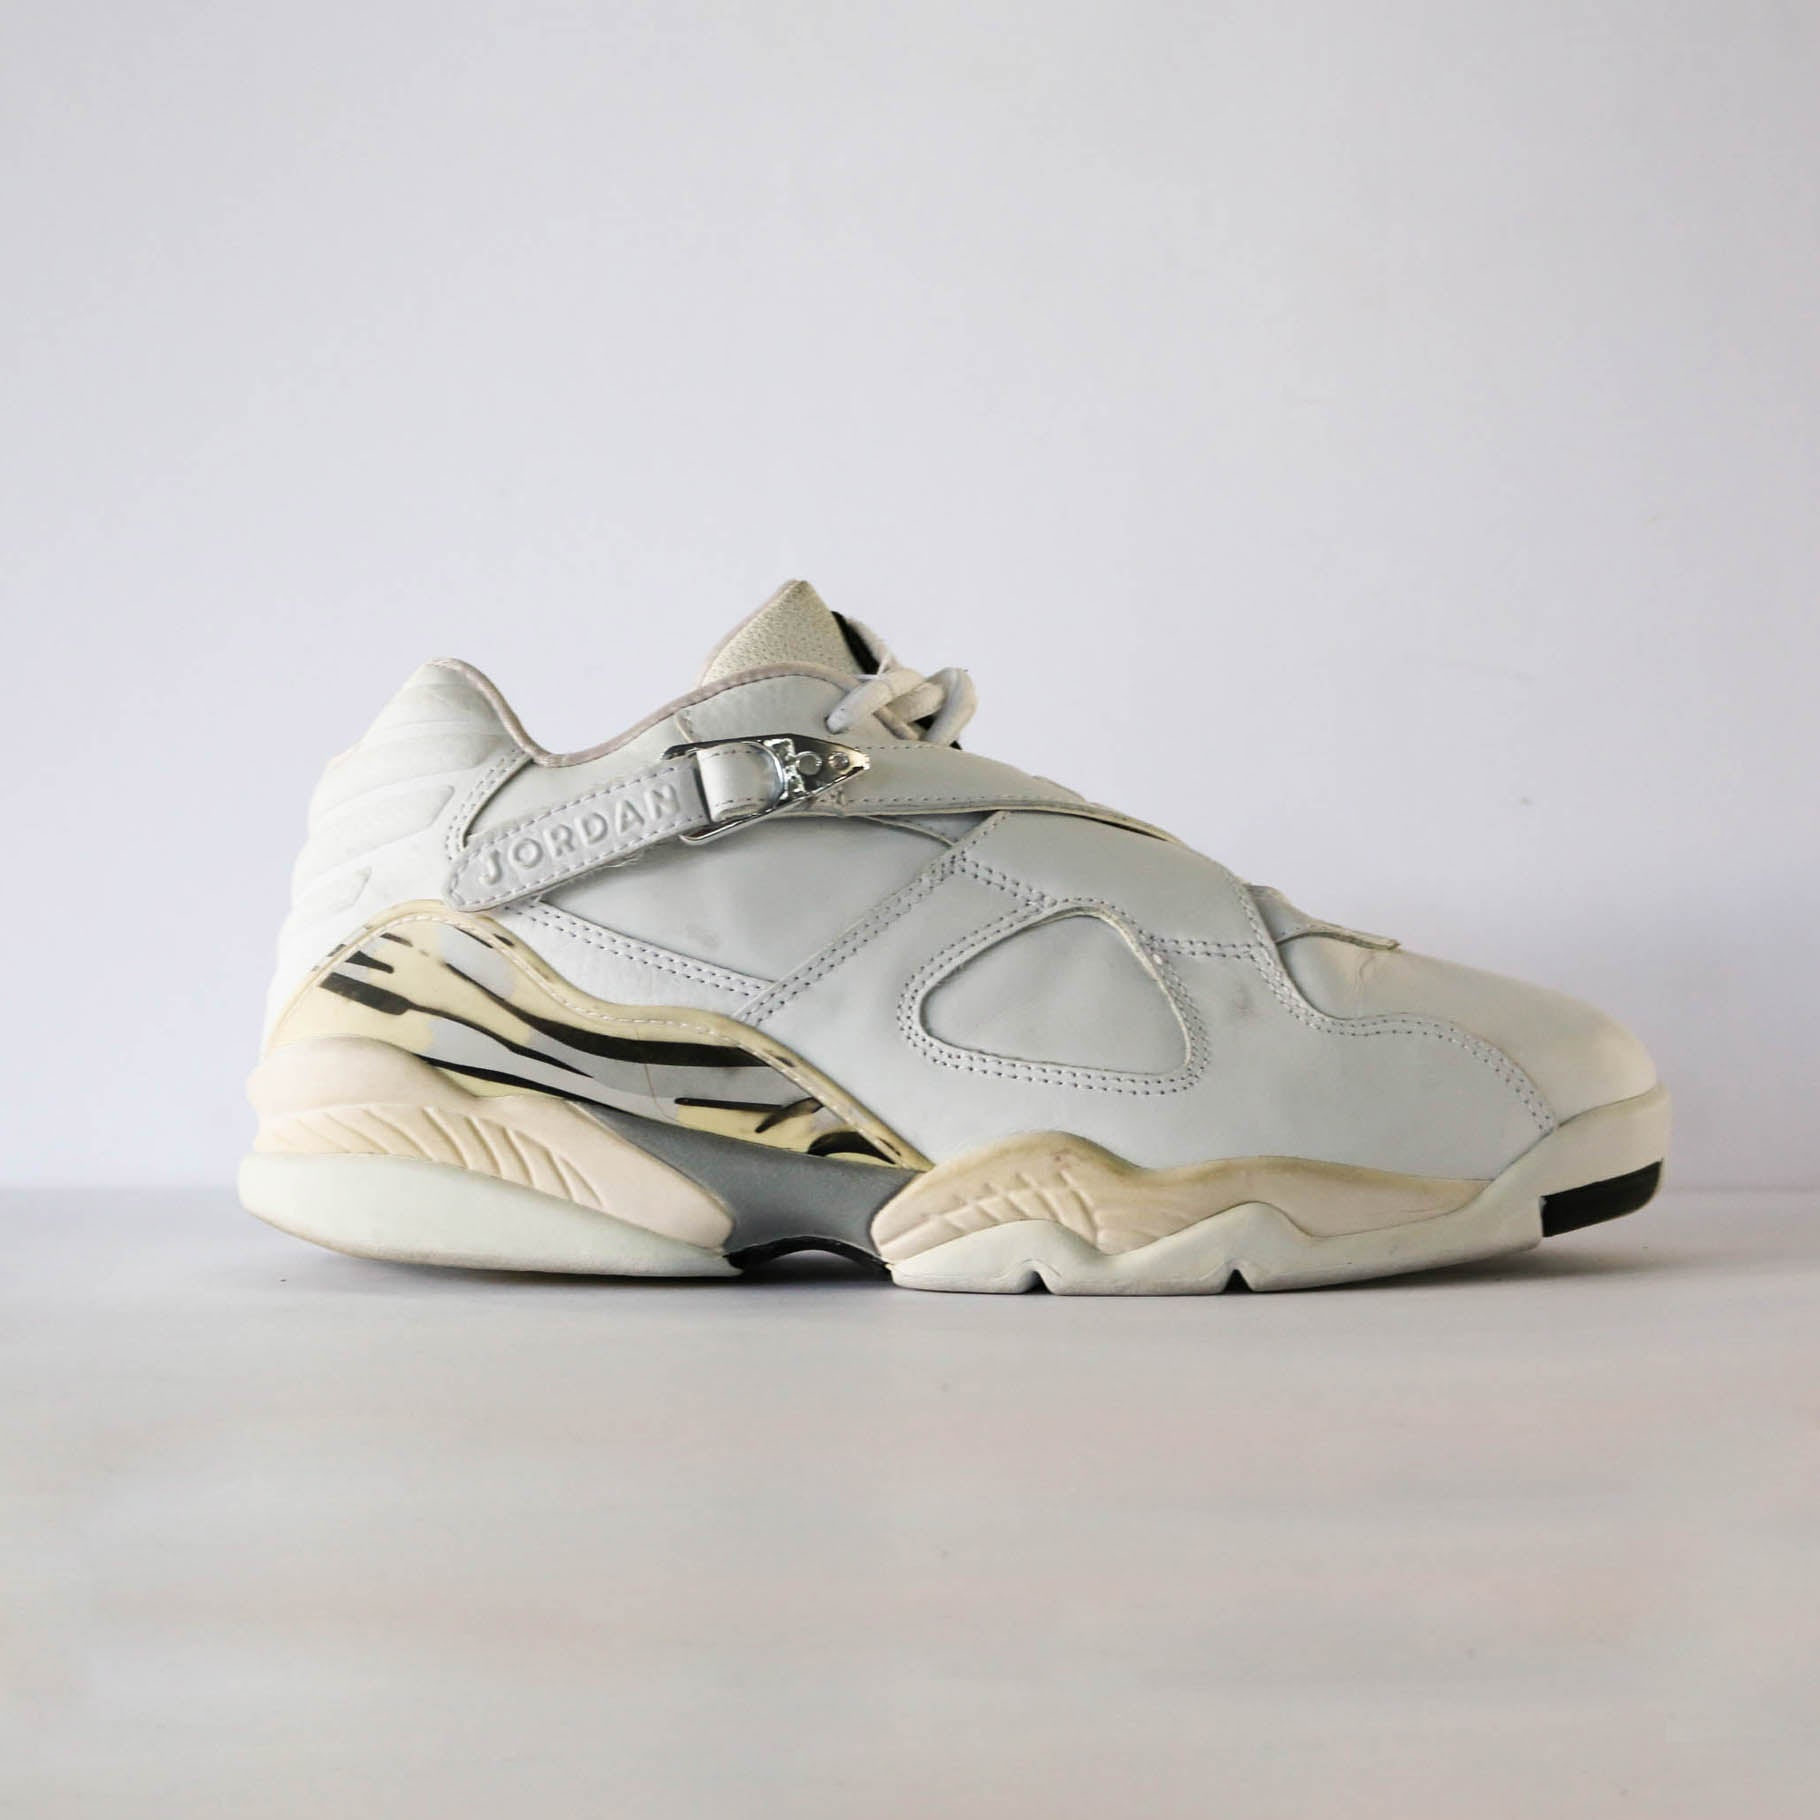 official photos bae26 12ea3 Air Jordan 8 Retro Low – Butter